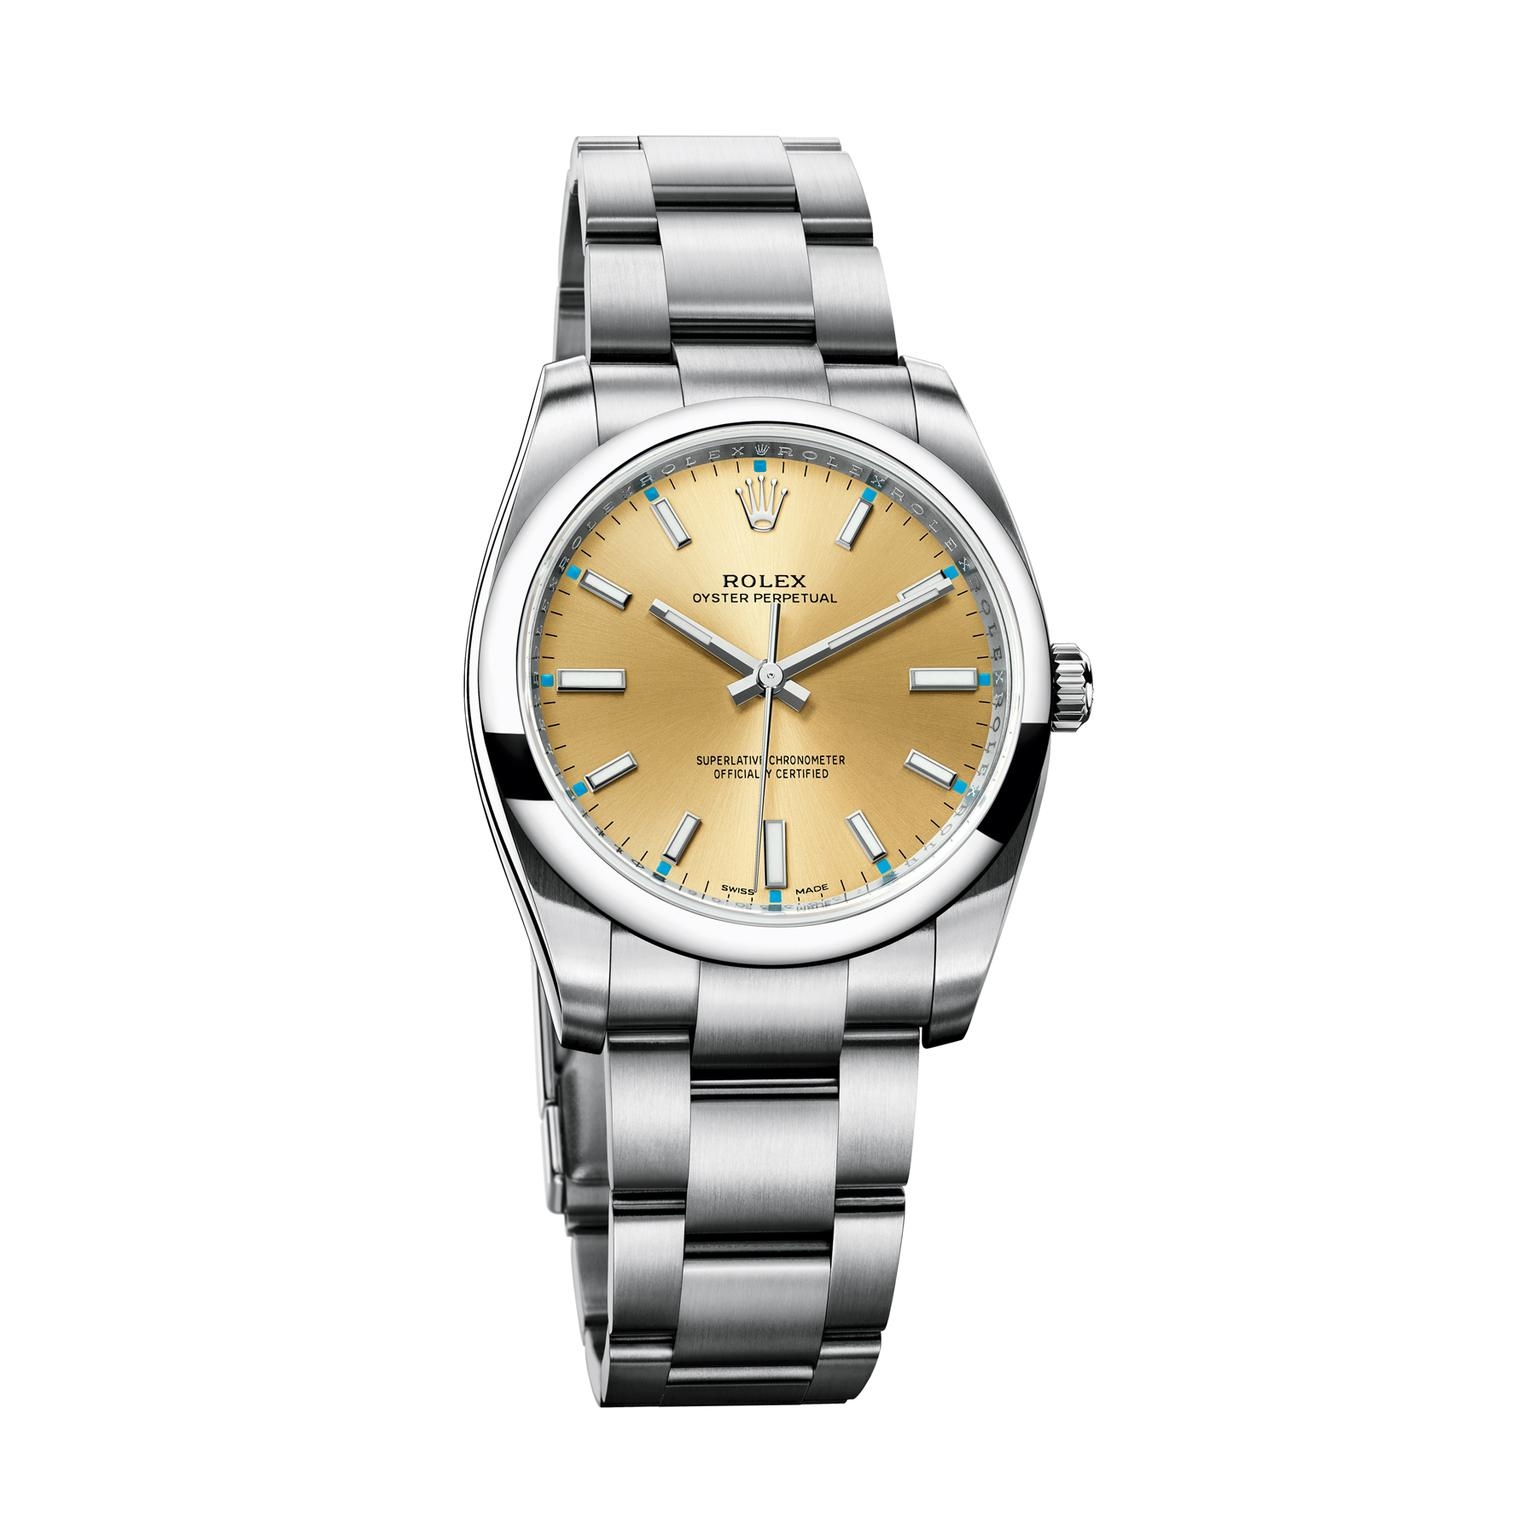 Rolex Oyster Perpetual 34mm watch